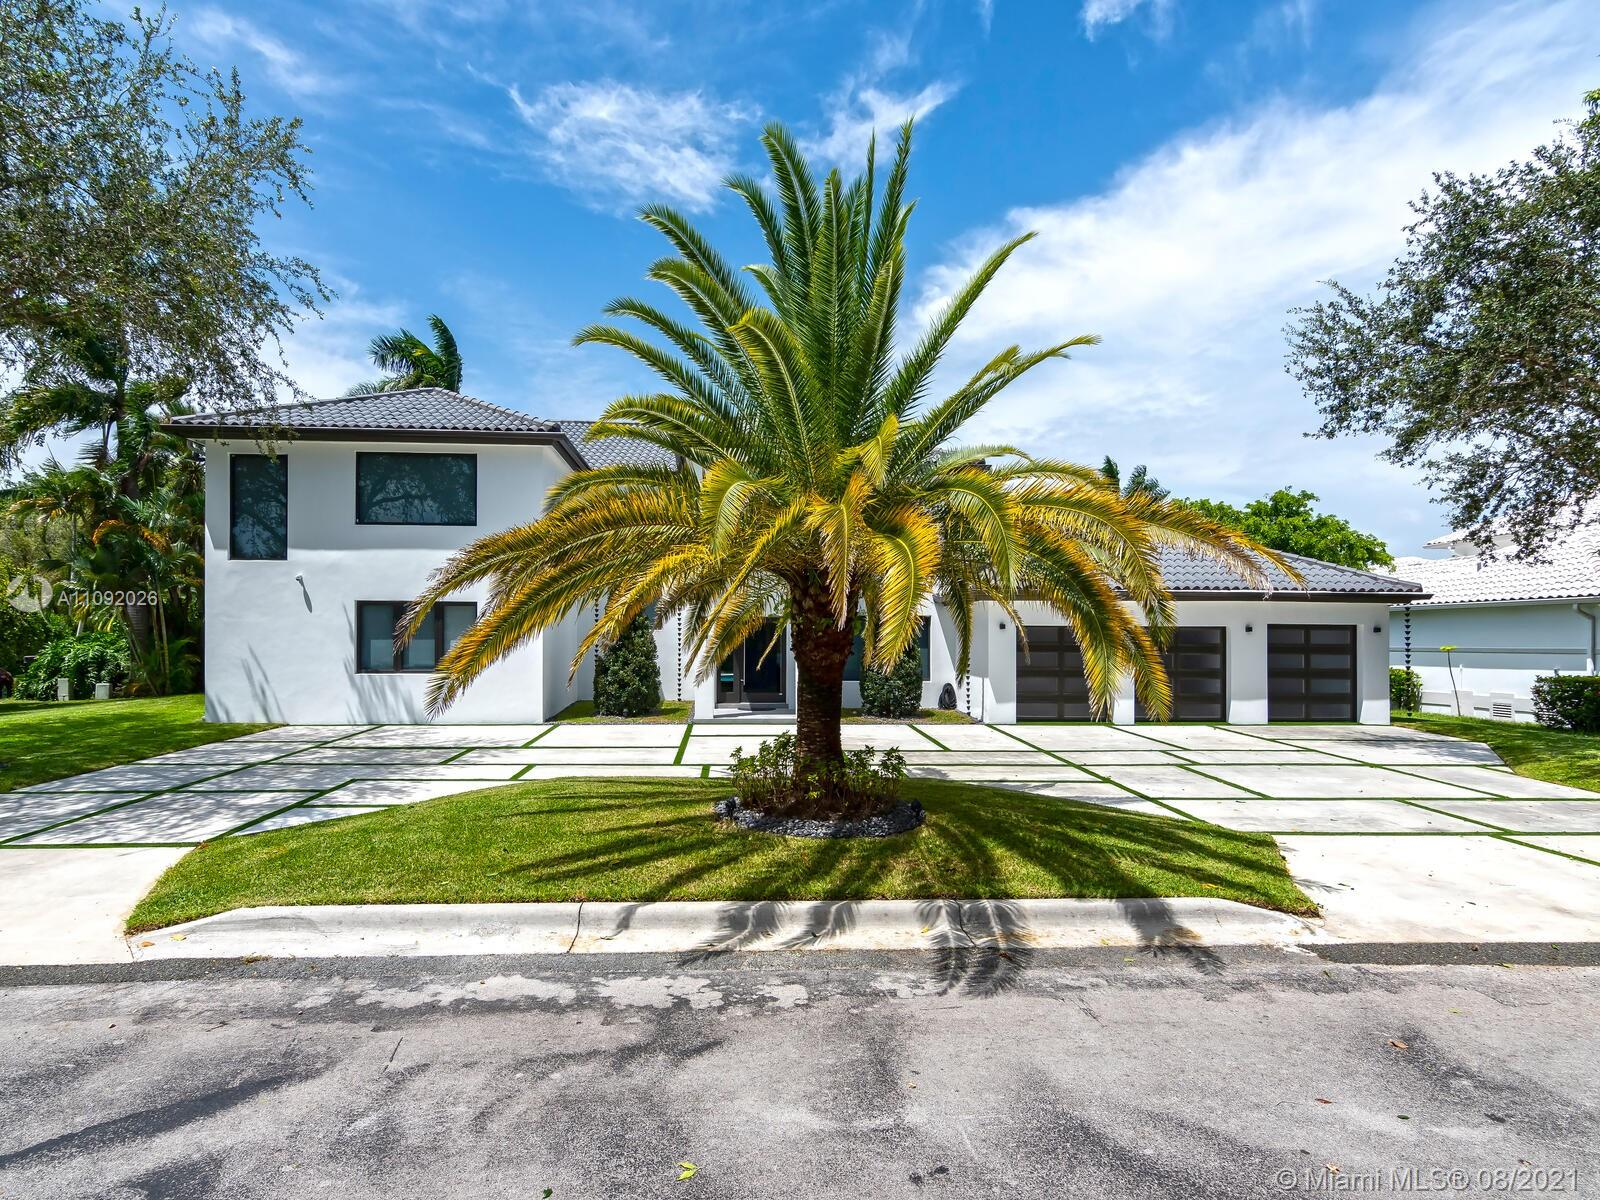 Most incredible attention to detail, the house underwent a complete remodel sparing no expense all top of the line finishes. This oasis is nestled in the heart of the city of Doral in the middle of the most prestigious golf courses in south Florida Trump National Doral. This is a must see.